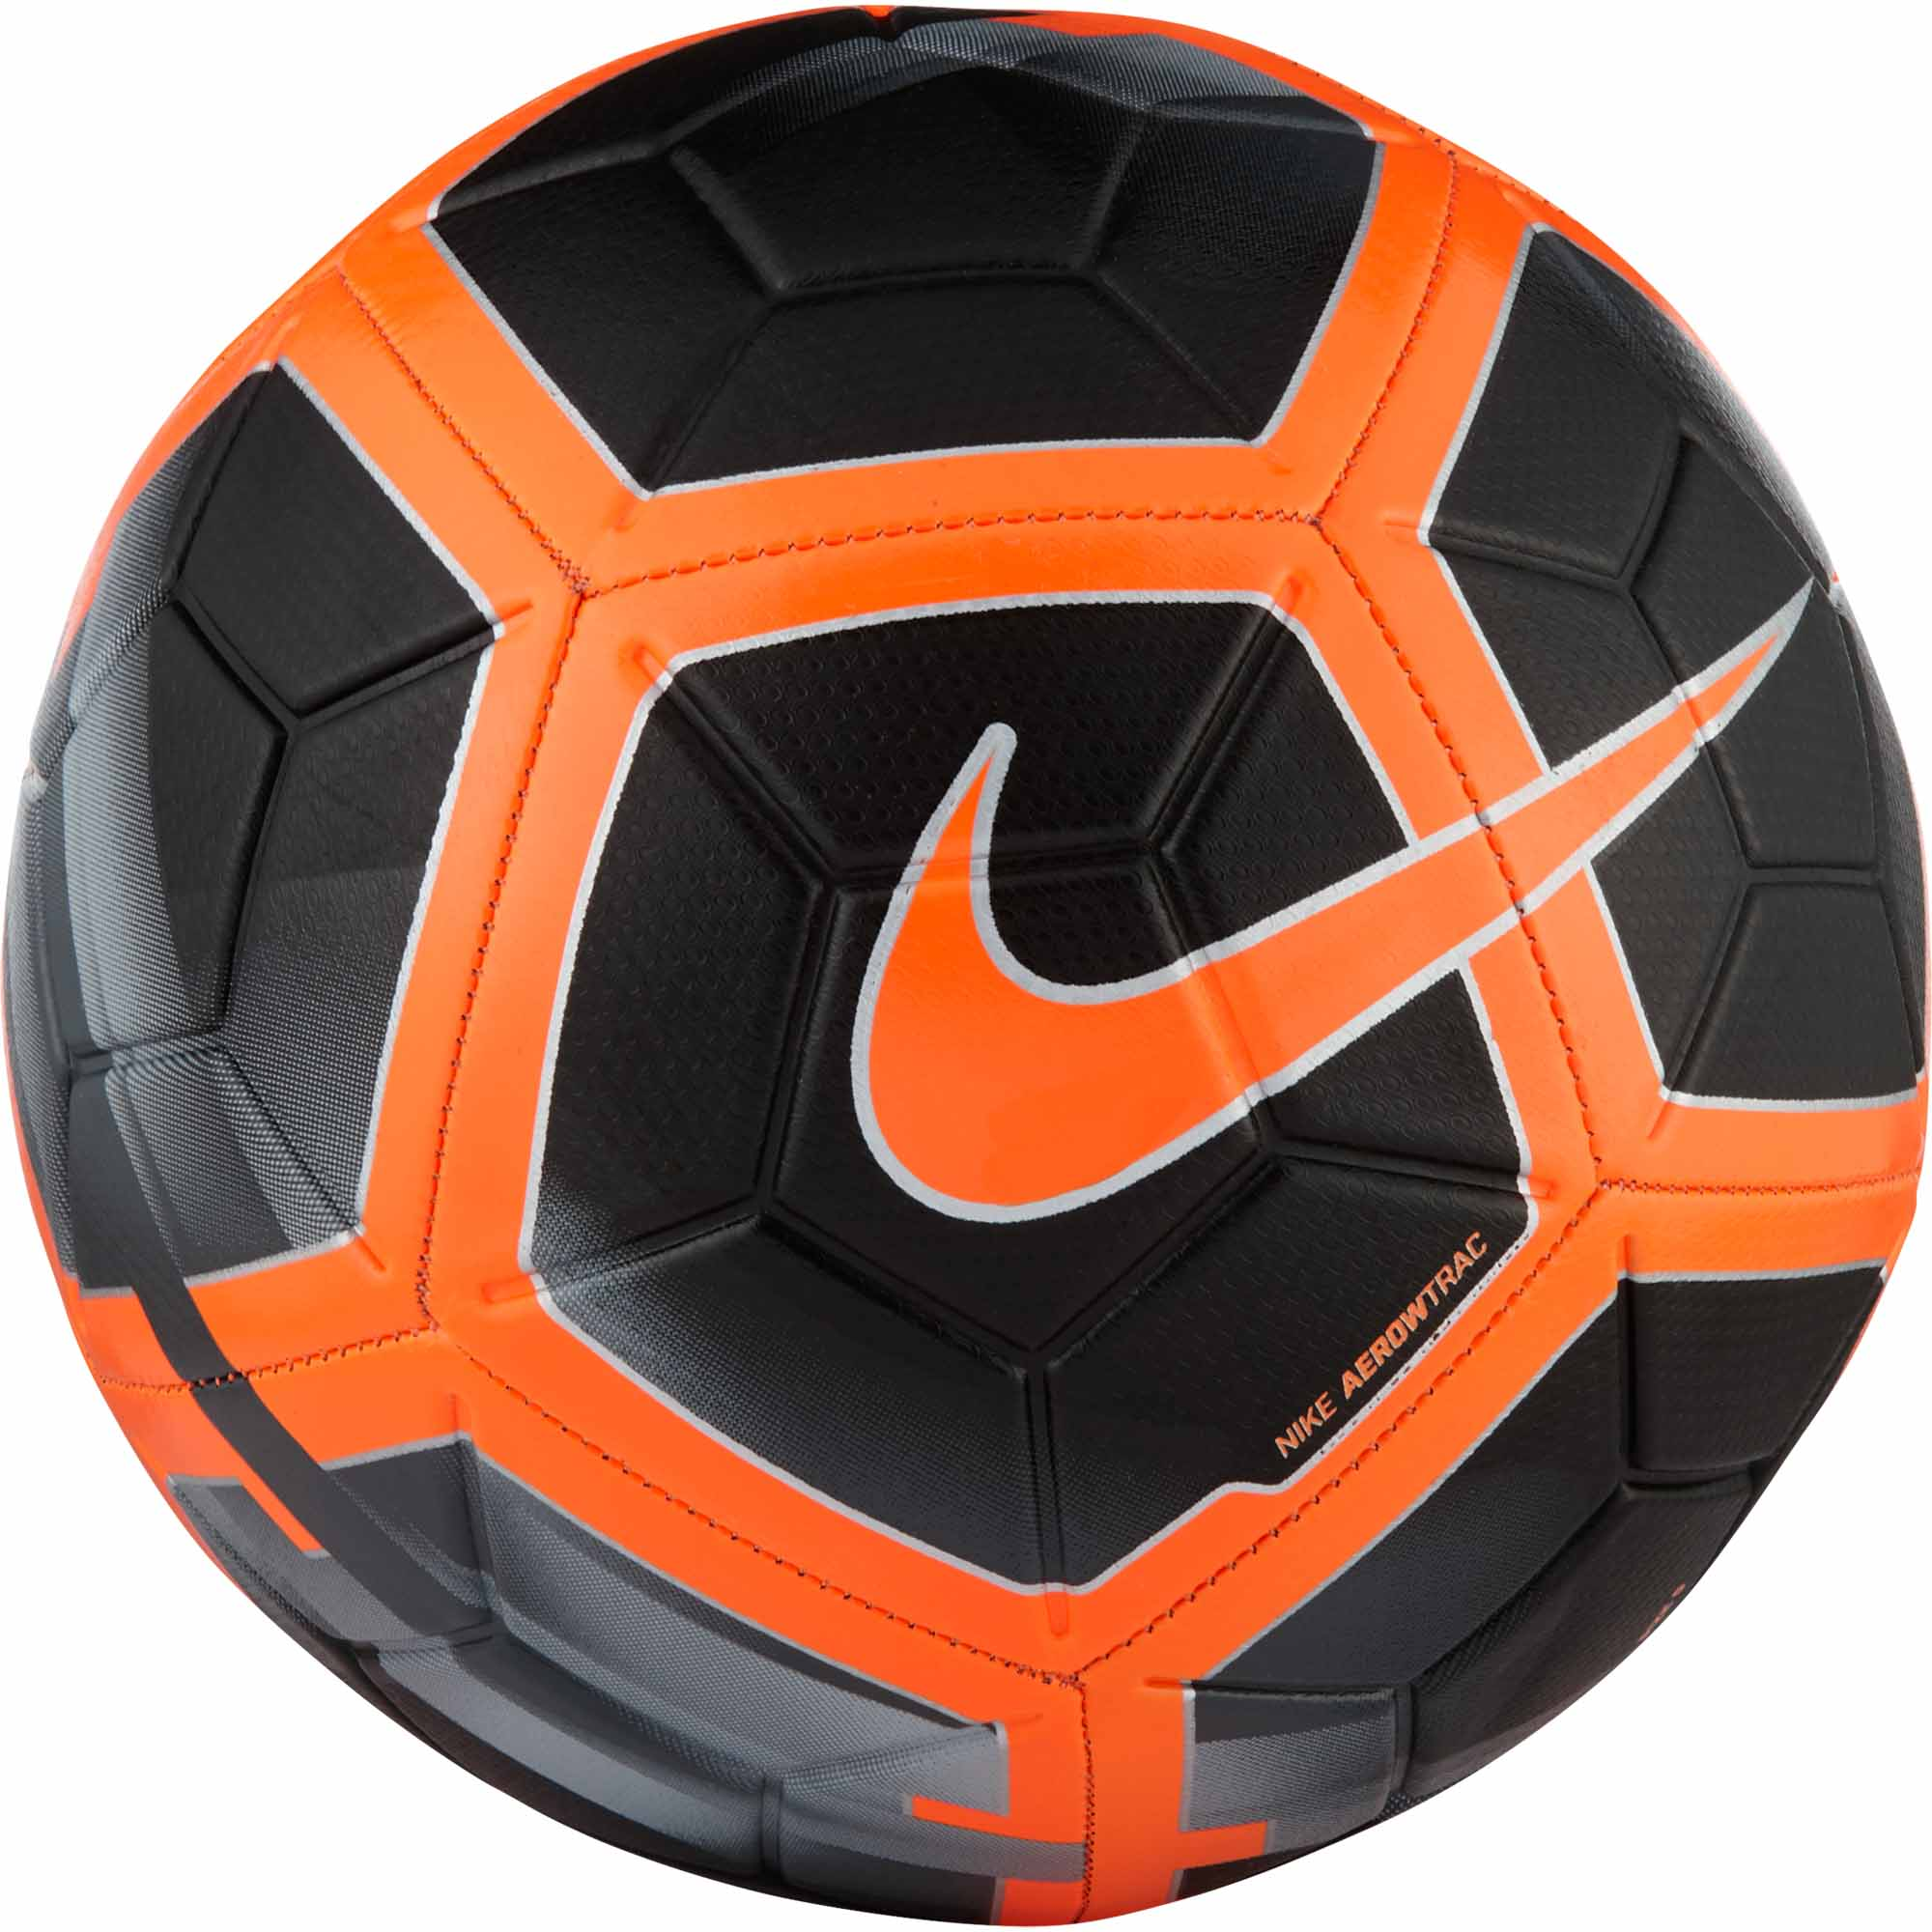 Nike Strike Soccer Ball - Black & Total Orange - SoccerPro.com